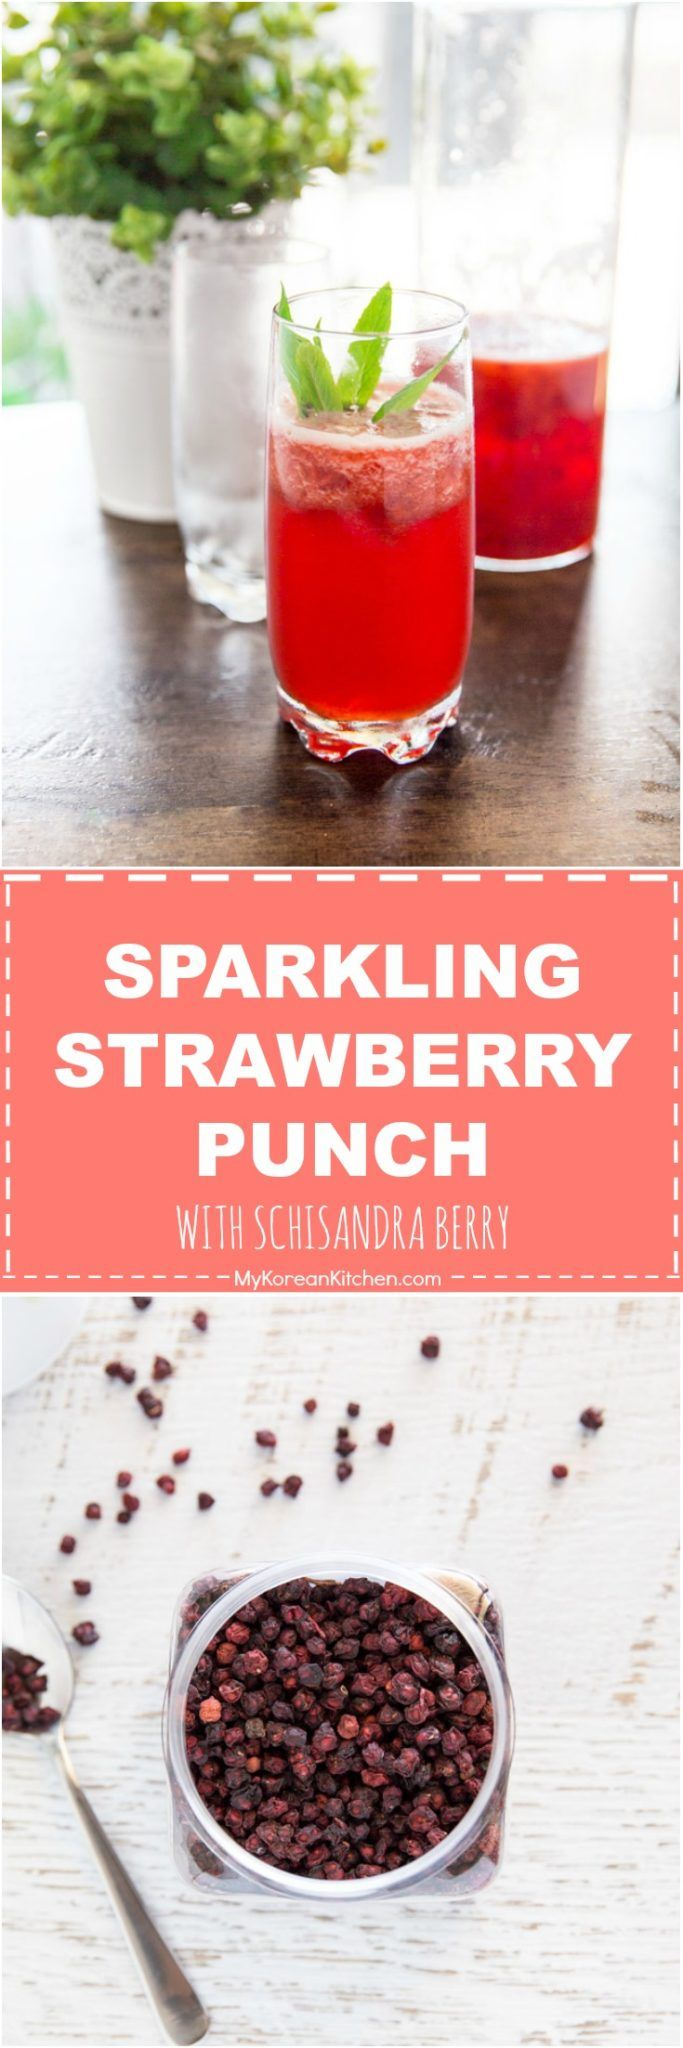 Delicious, exotic and non alcoholic punch recipe. Sparkling Strawberry Punch with Schisandra Berry | MyKoreanKitchen.com via @mykoreankitchen